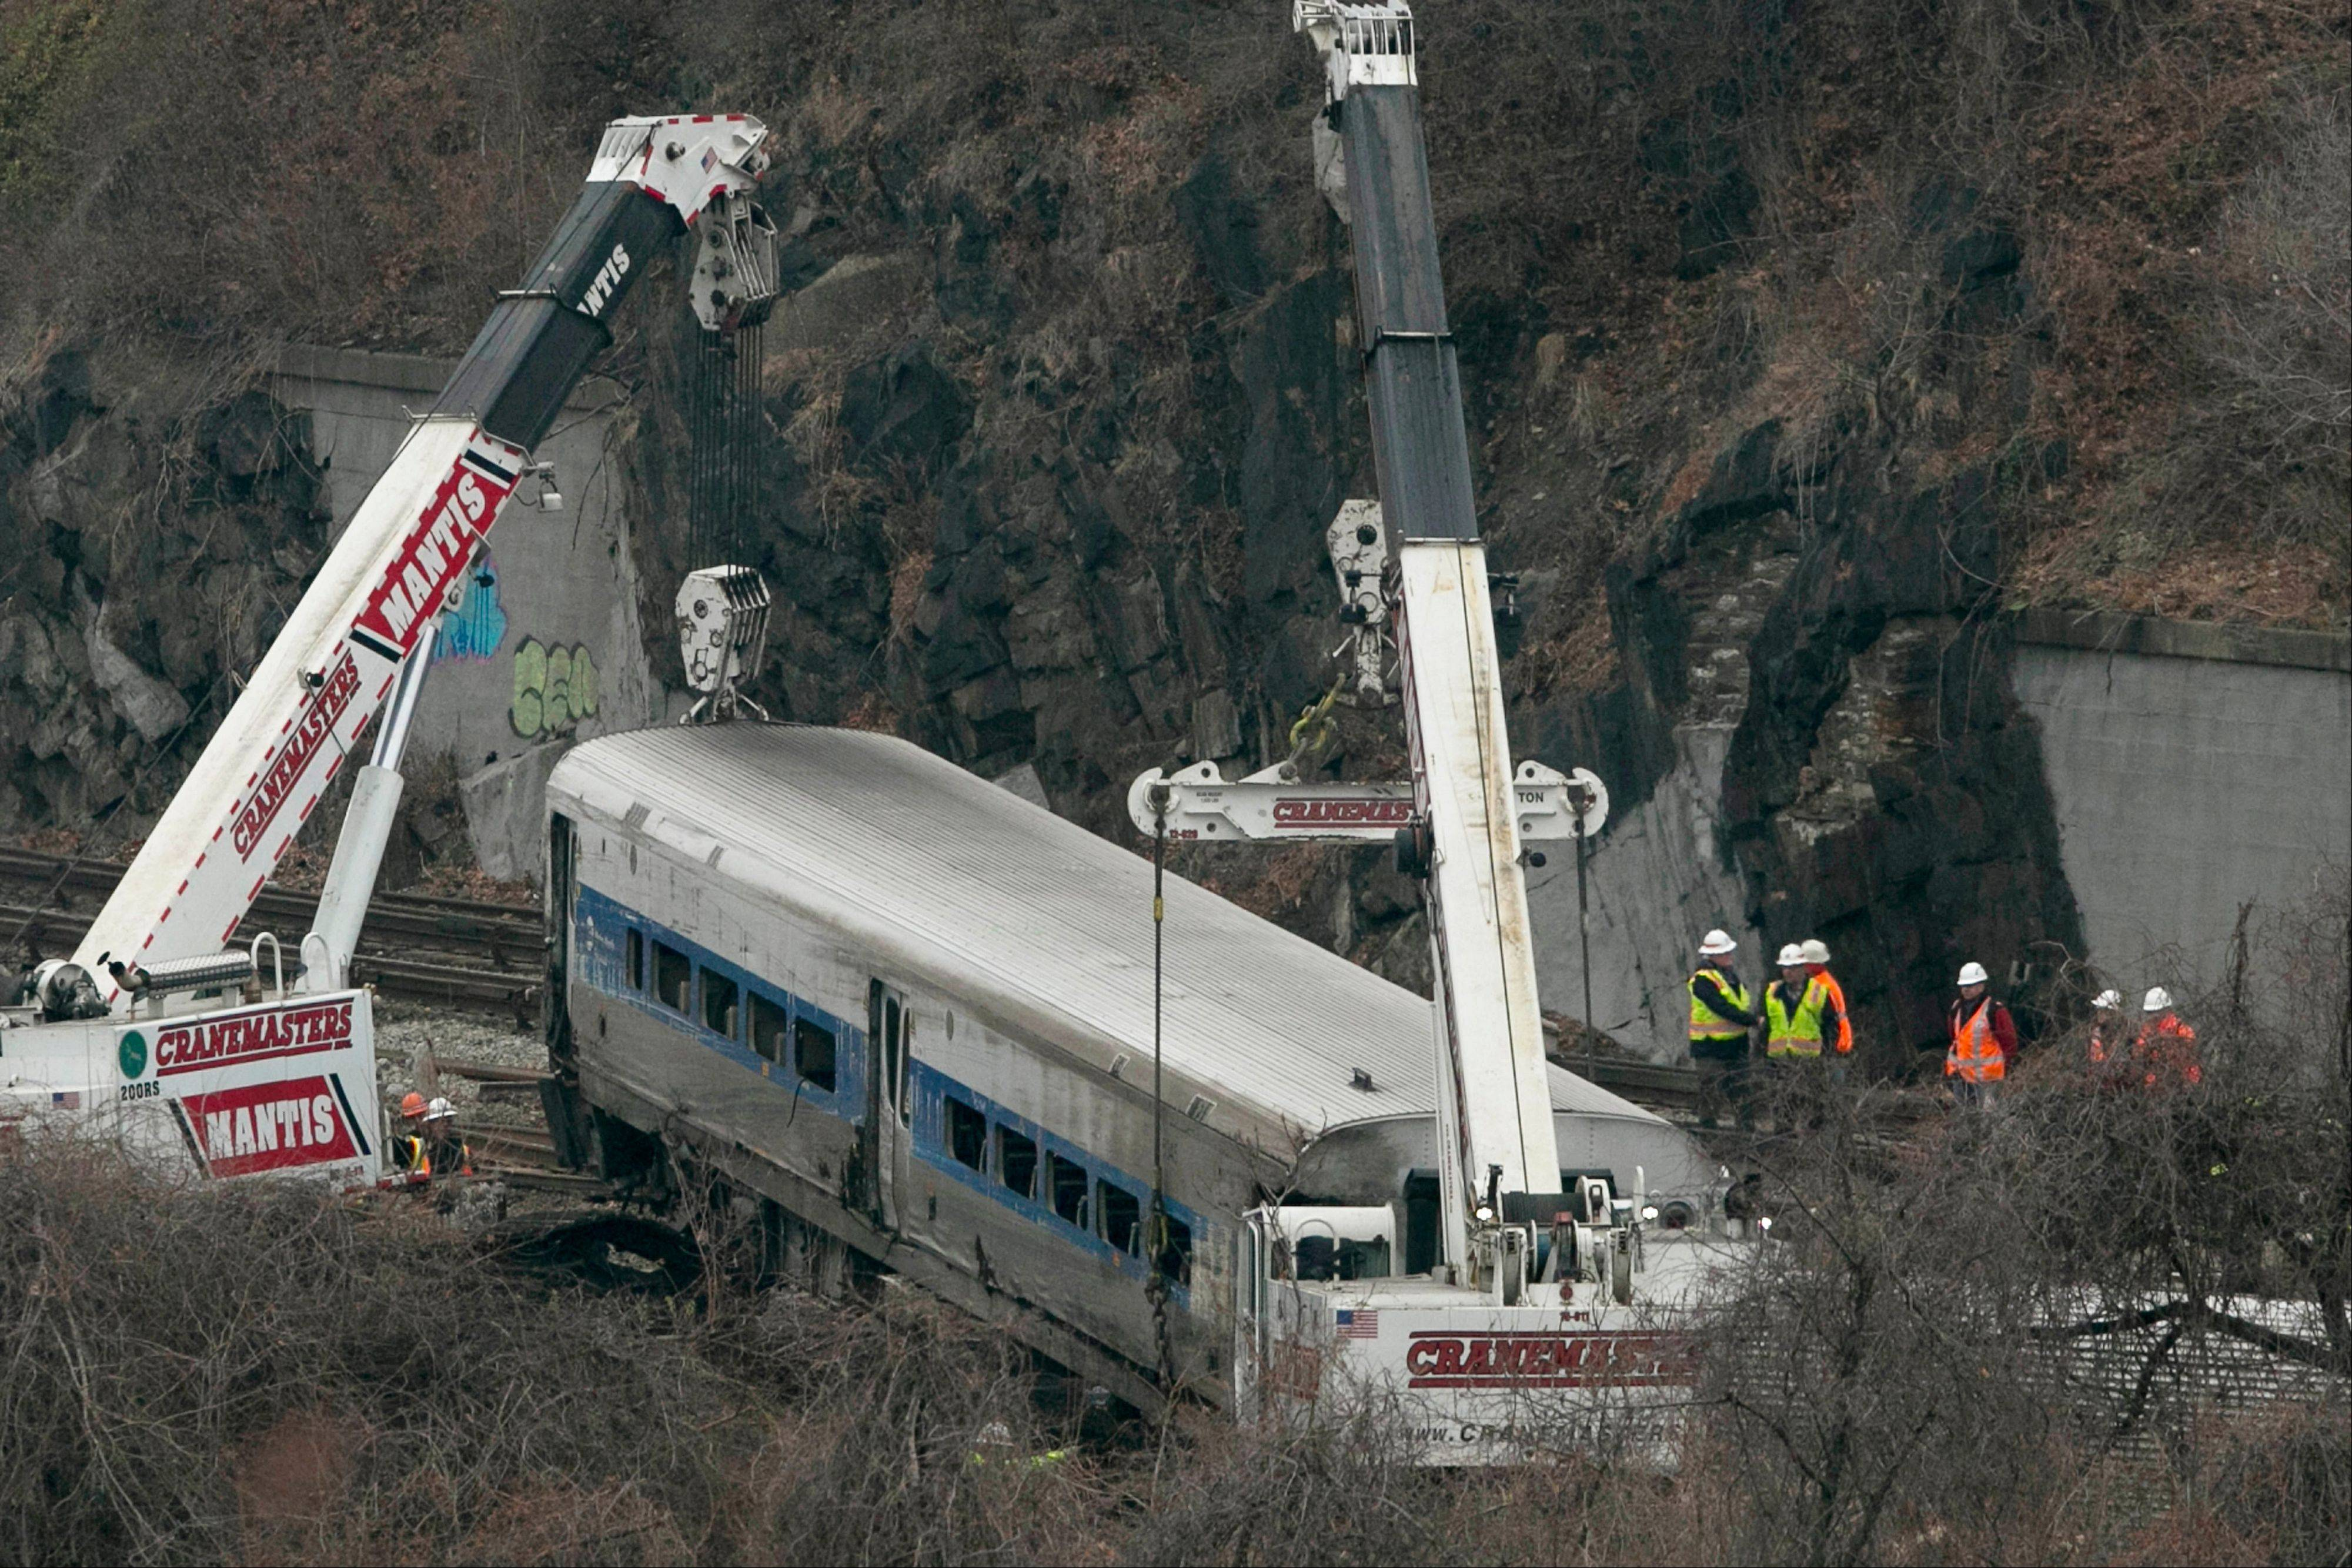 Cranes lift a derailed Metro North train car Monday in the Bronx borough of New York, when federal authorities began righting the cars as they investigated what caused a the commuter train rounding a riverside curve to derail.